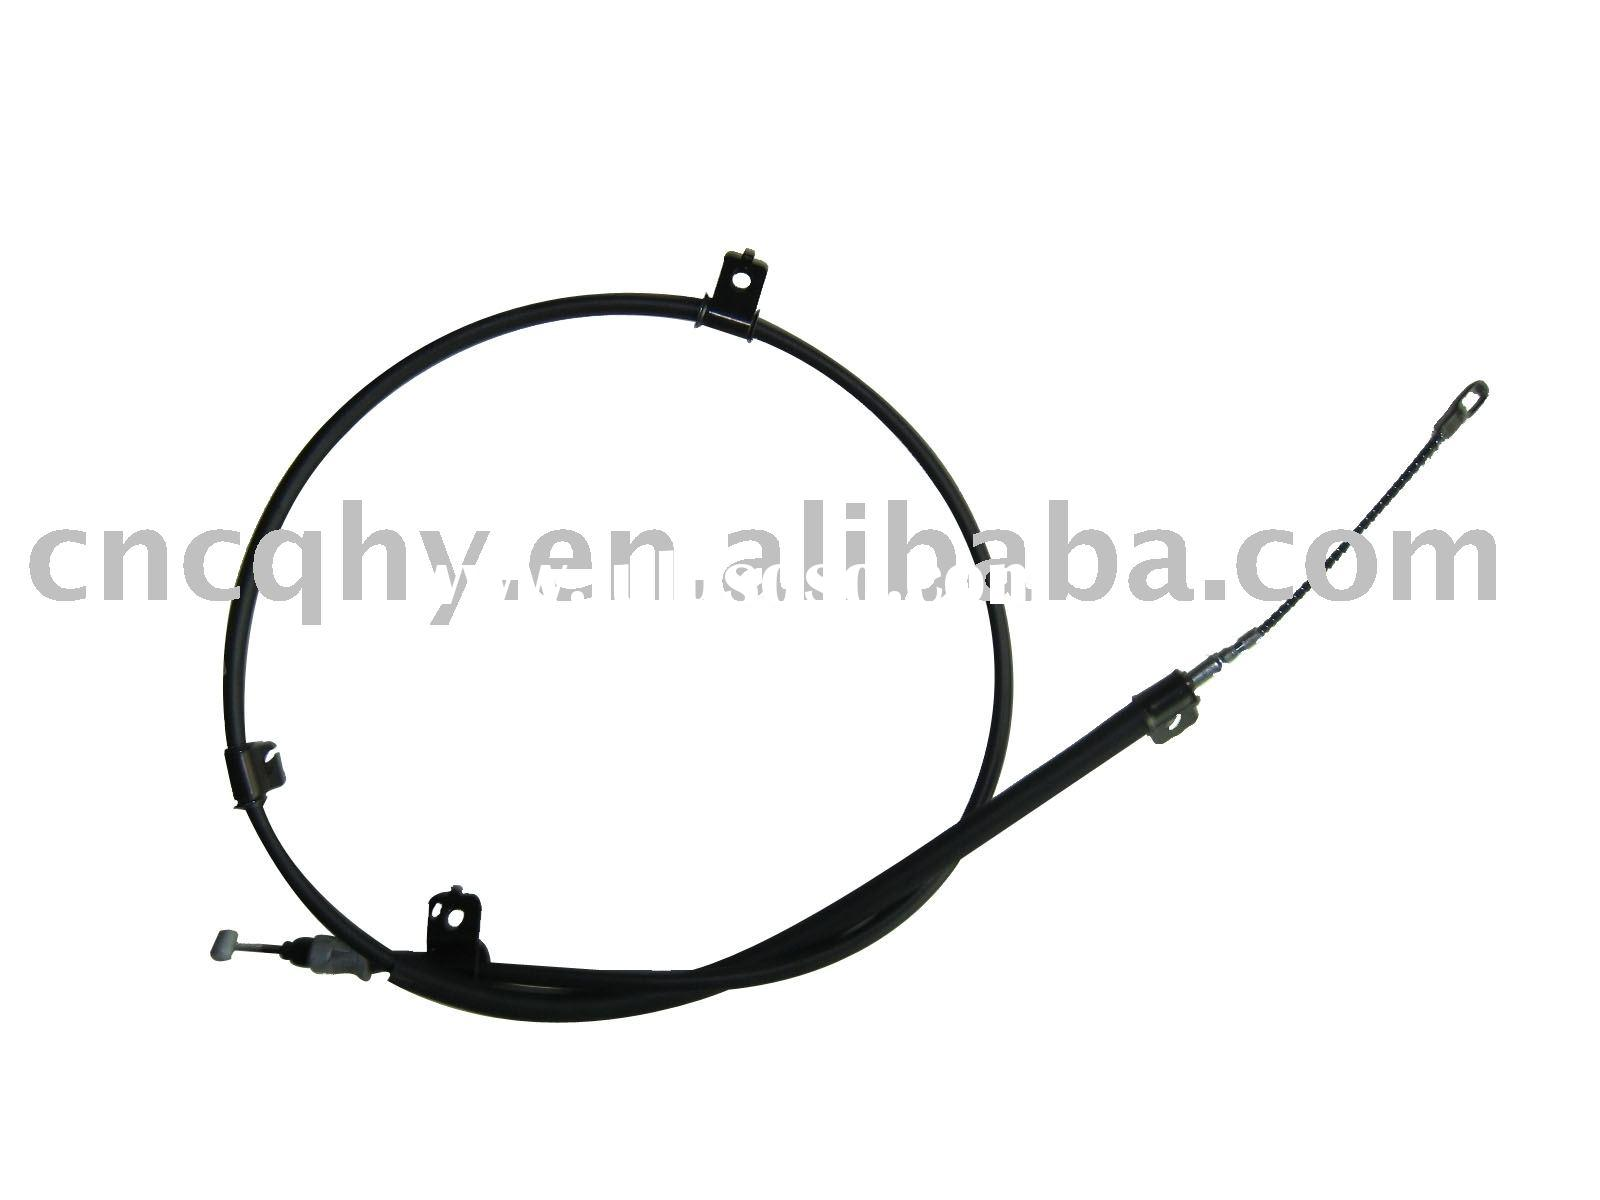 Hand Brake Cable Hand Brake Cable Manufacturers In